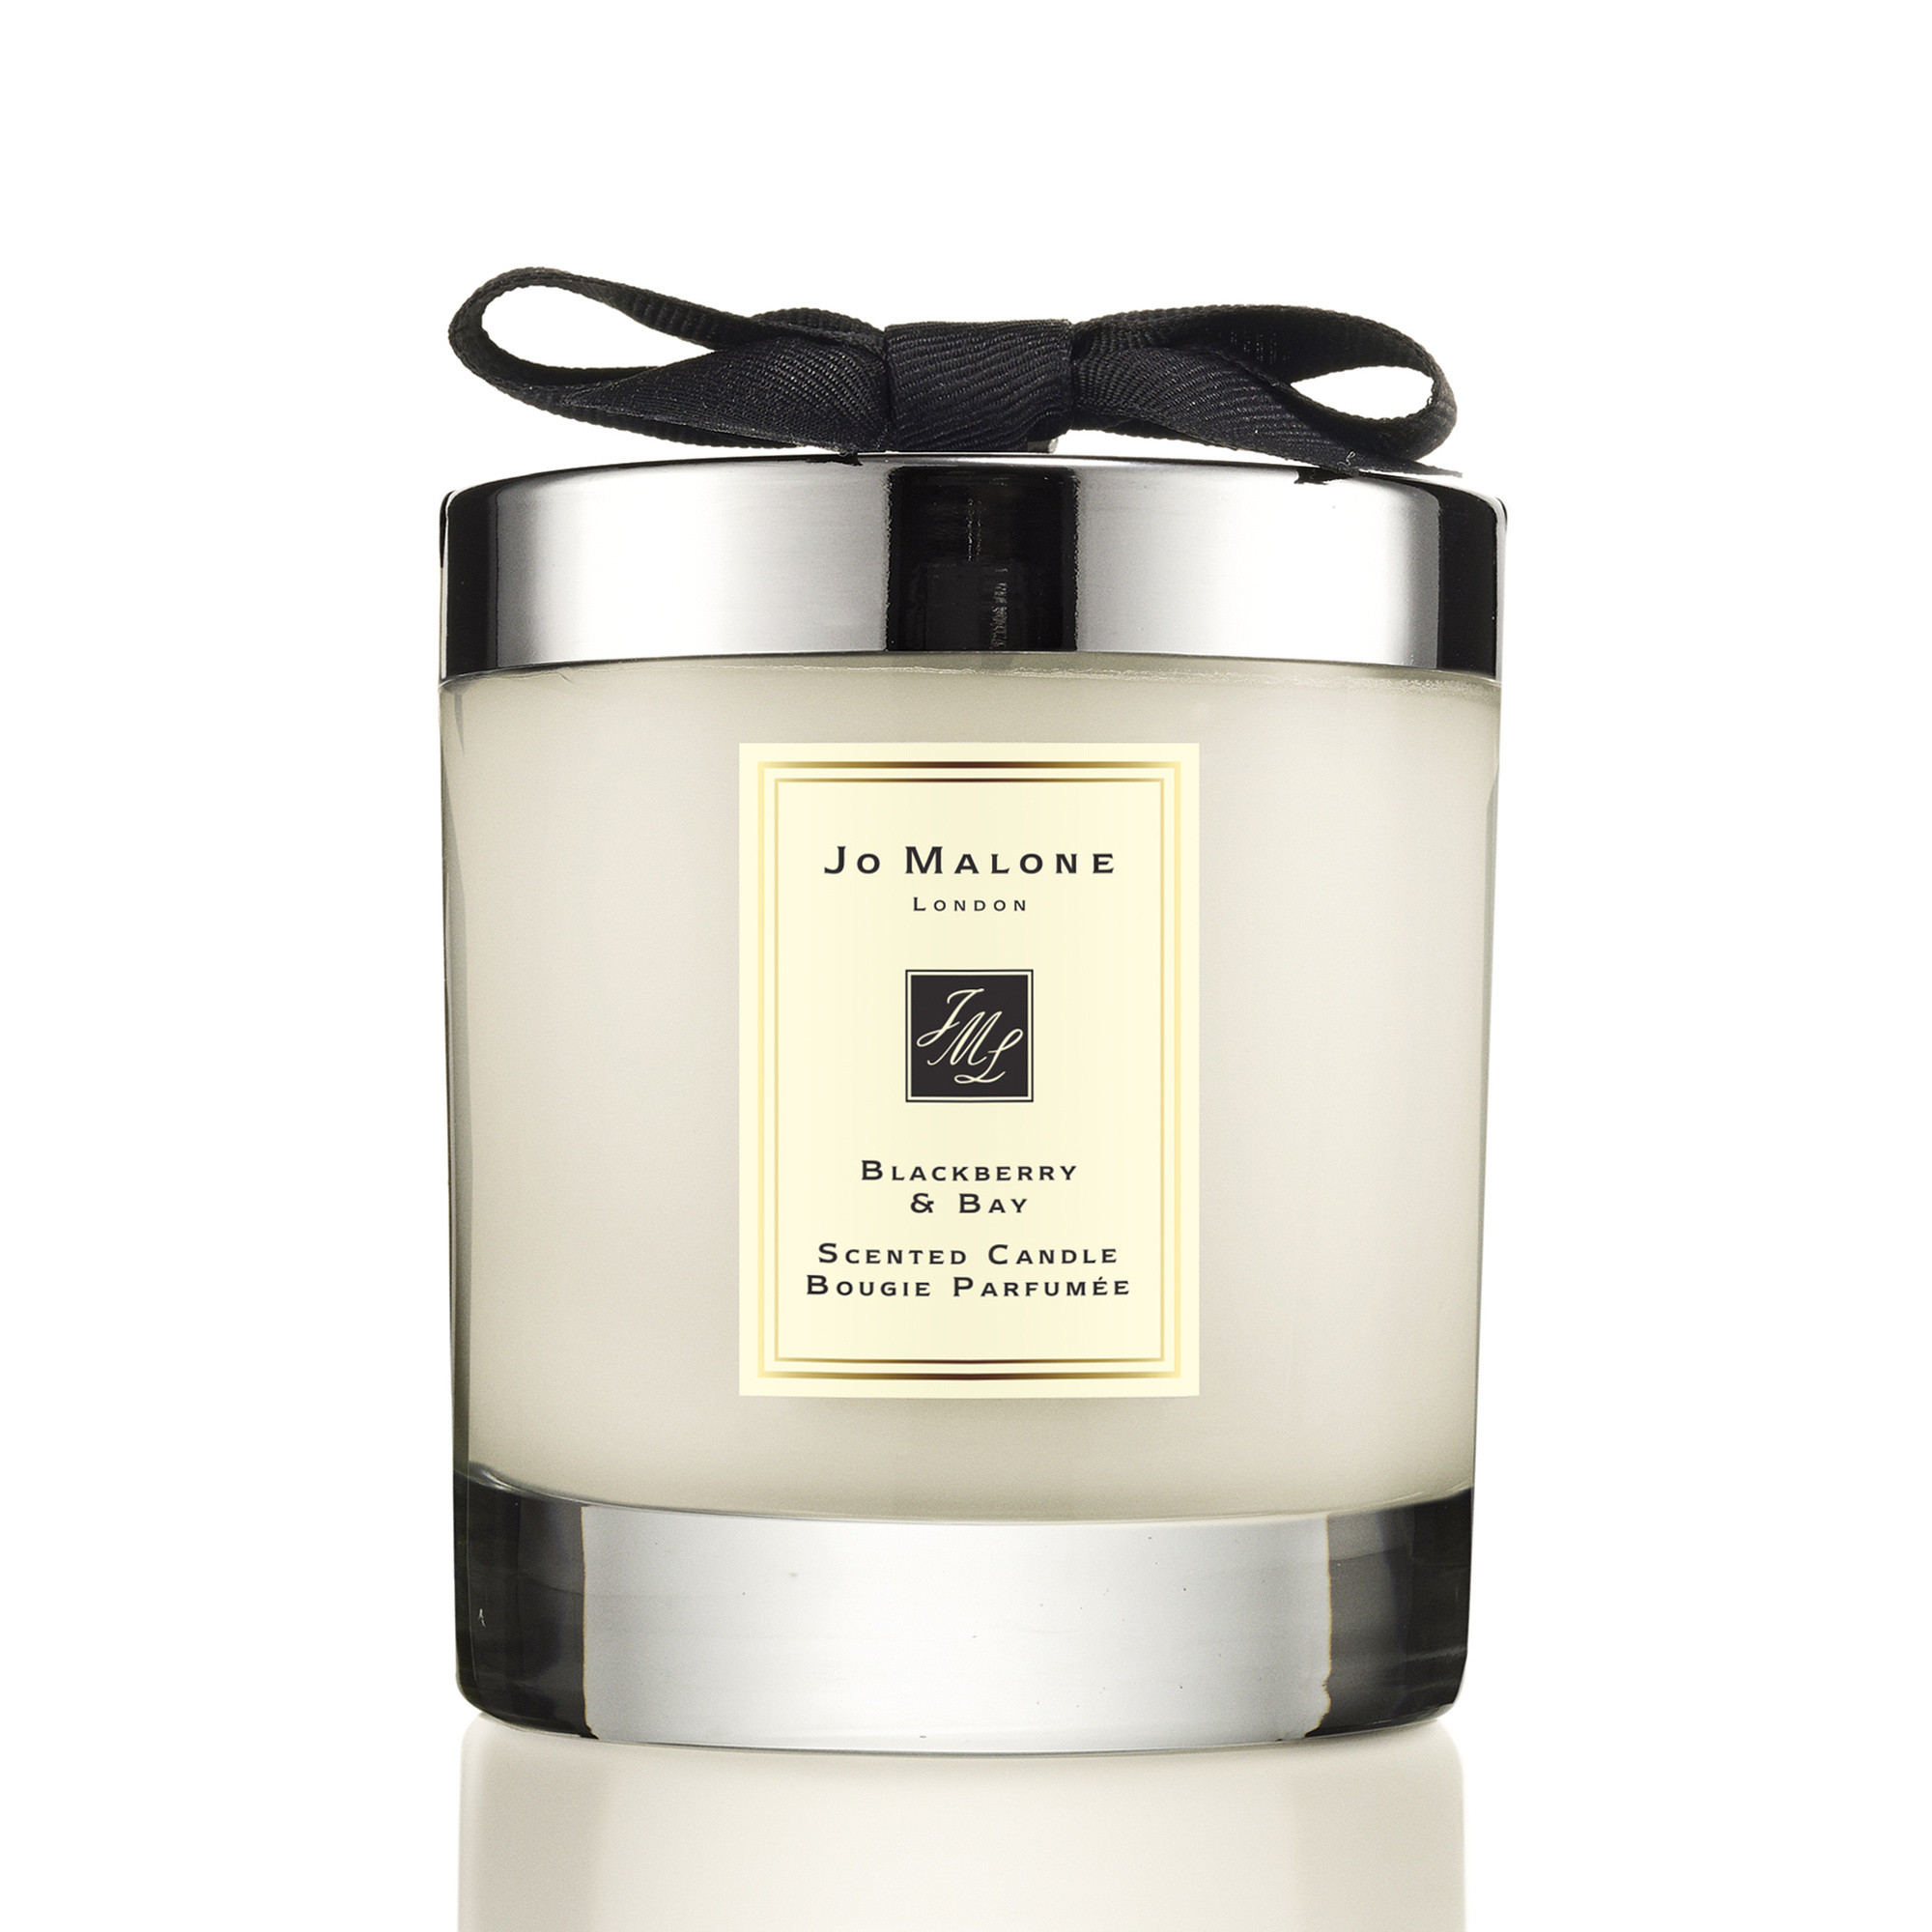 Jo Malone London blackberry & bay home candle 200 g, Nero, large image number 0